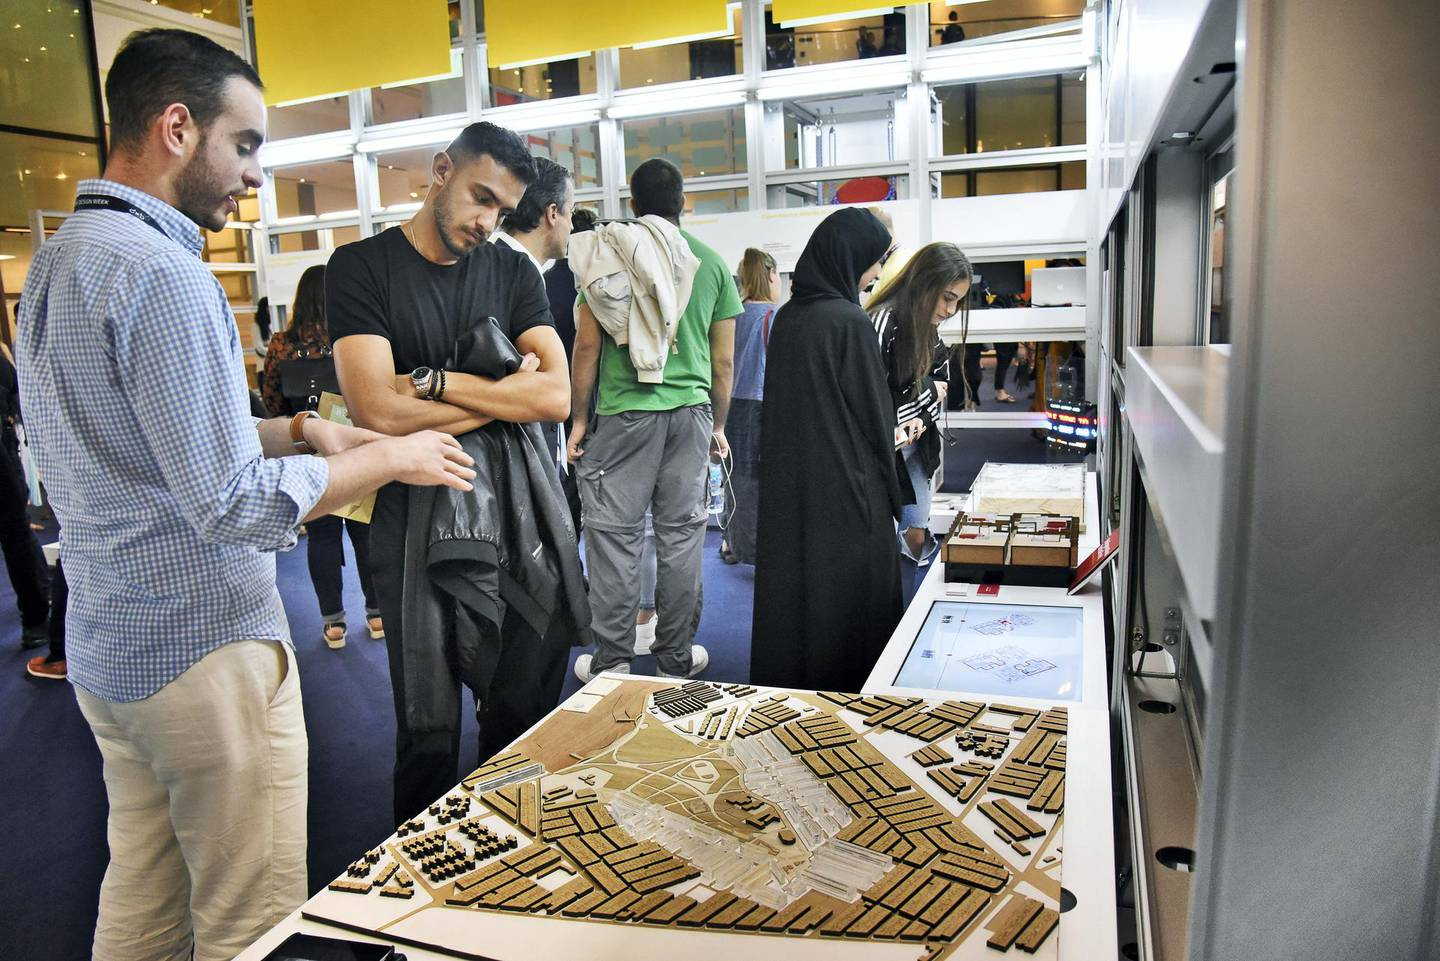 An exhibitor, left, explains his project at the Global Grad Show during the Dubai Design Week at the Dubai Design District, Dubai, UAE, on Monday, Nov. 11, 2019. (Photos by Shruti Jain - The National)